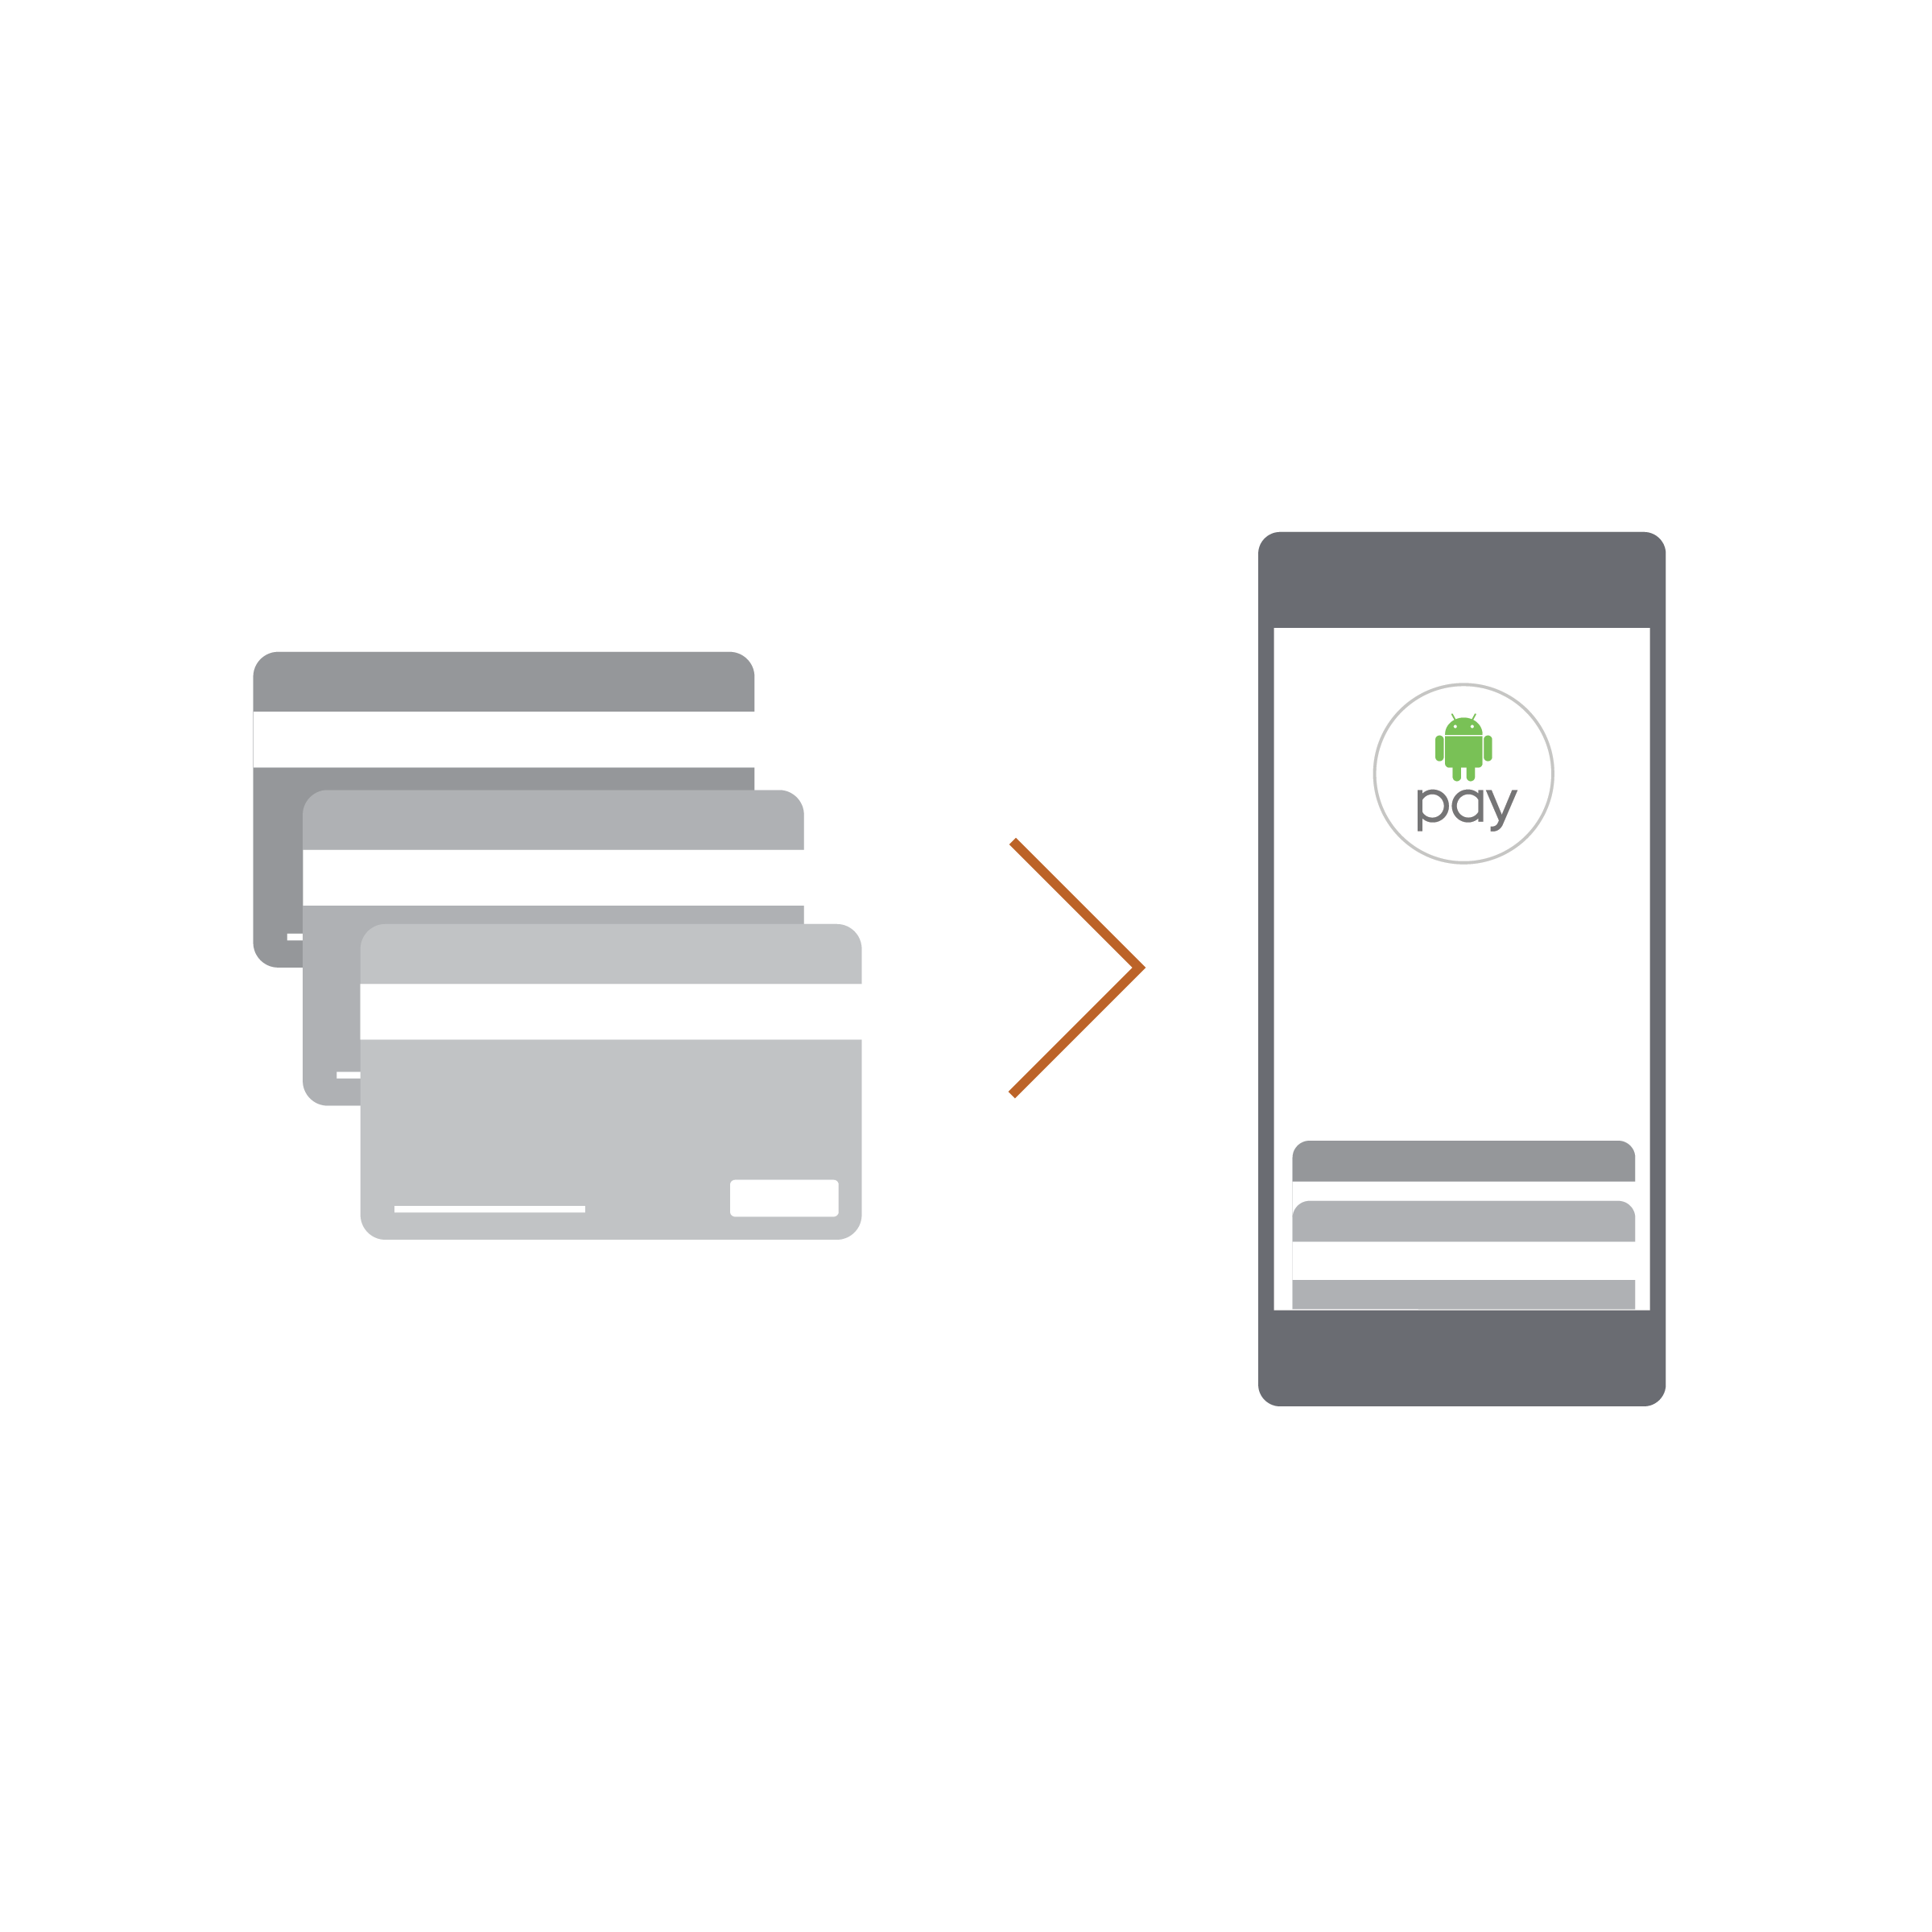 android pay   pay with a single touch   machias savings bank